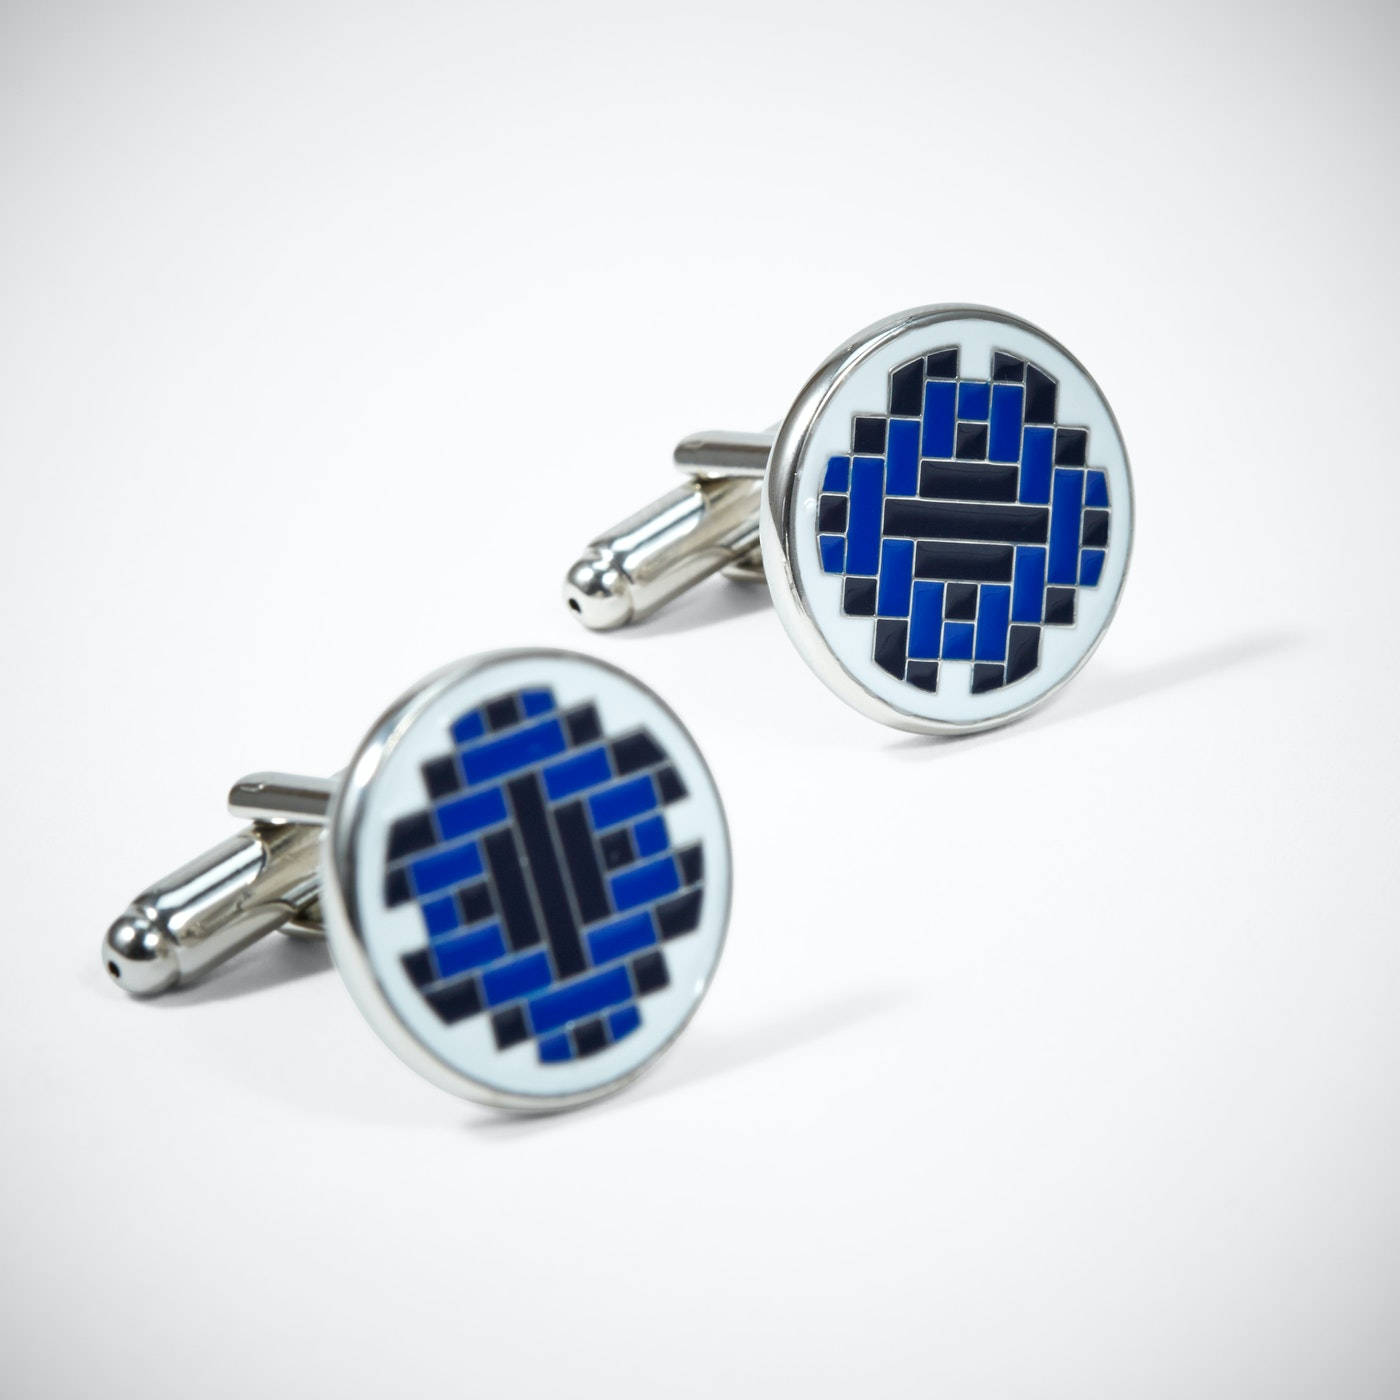 Blue Tile Cufflinks